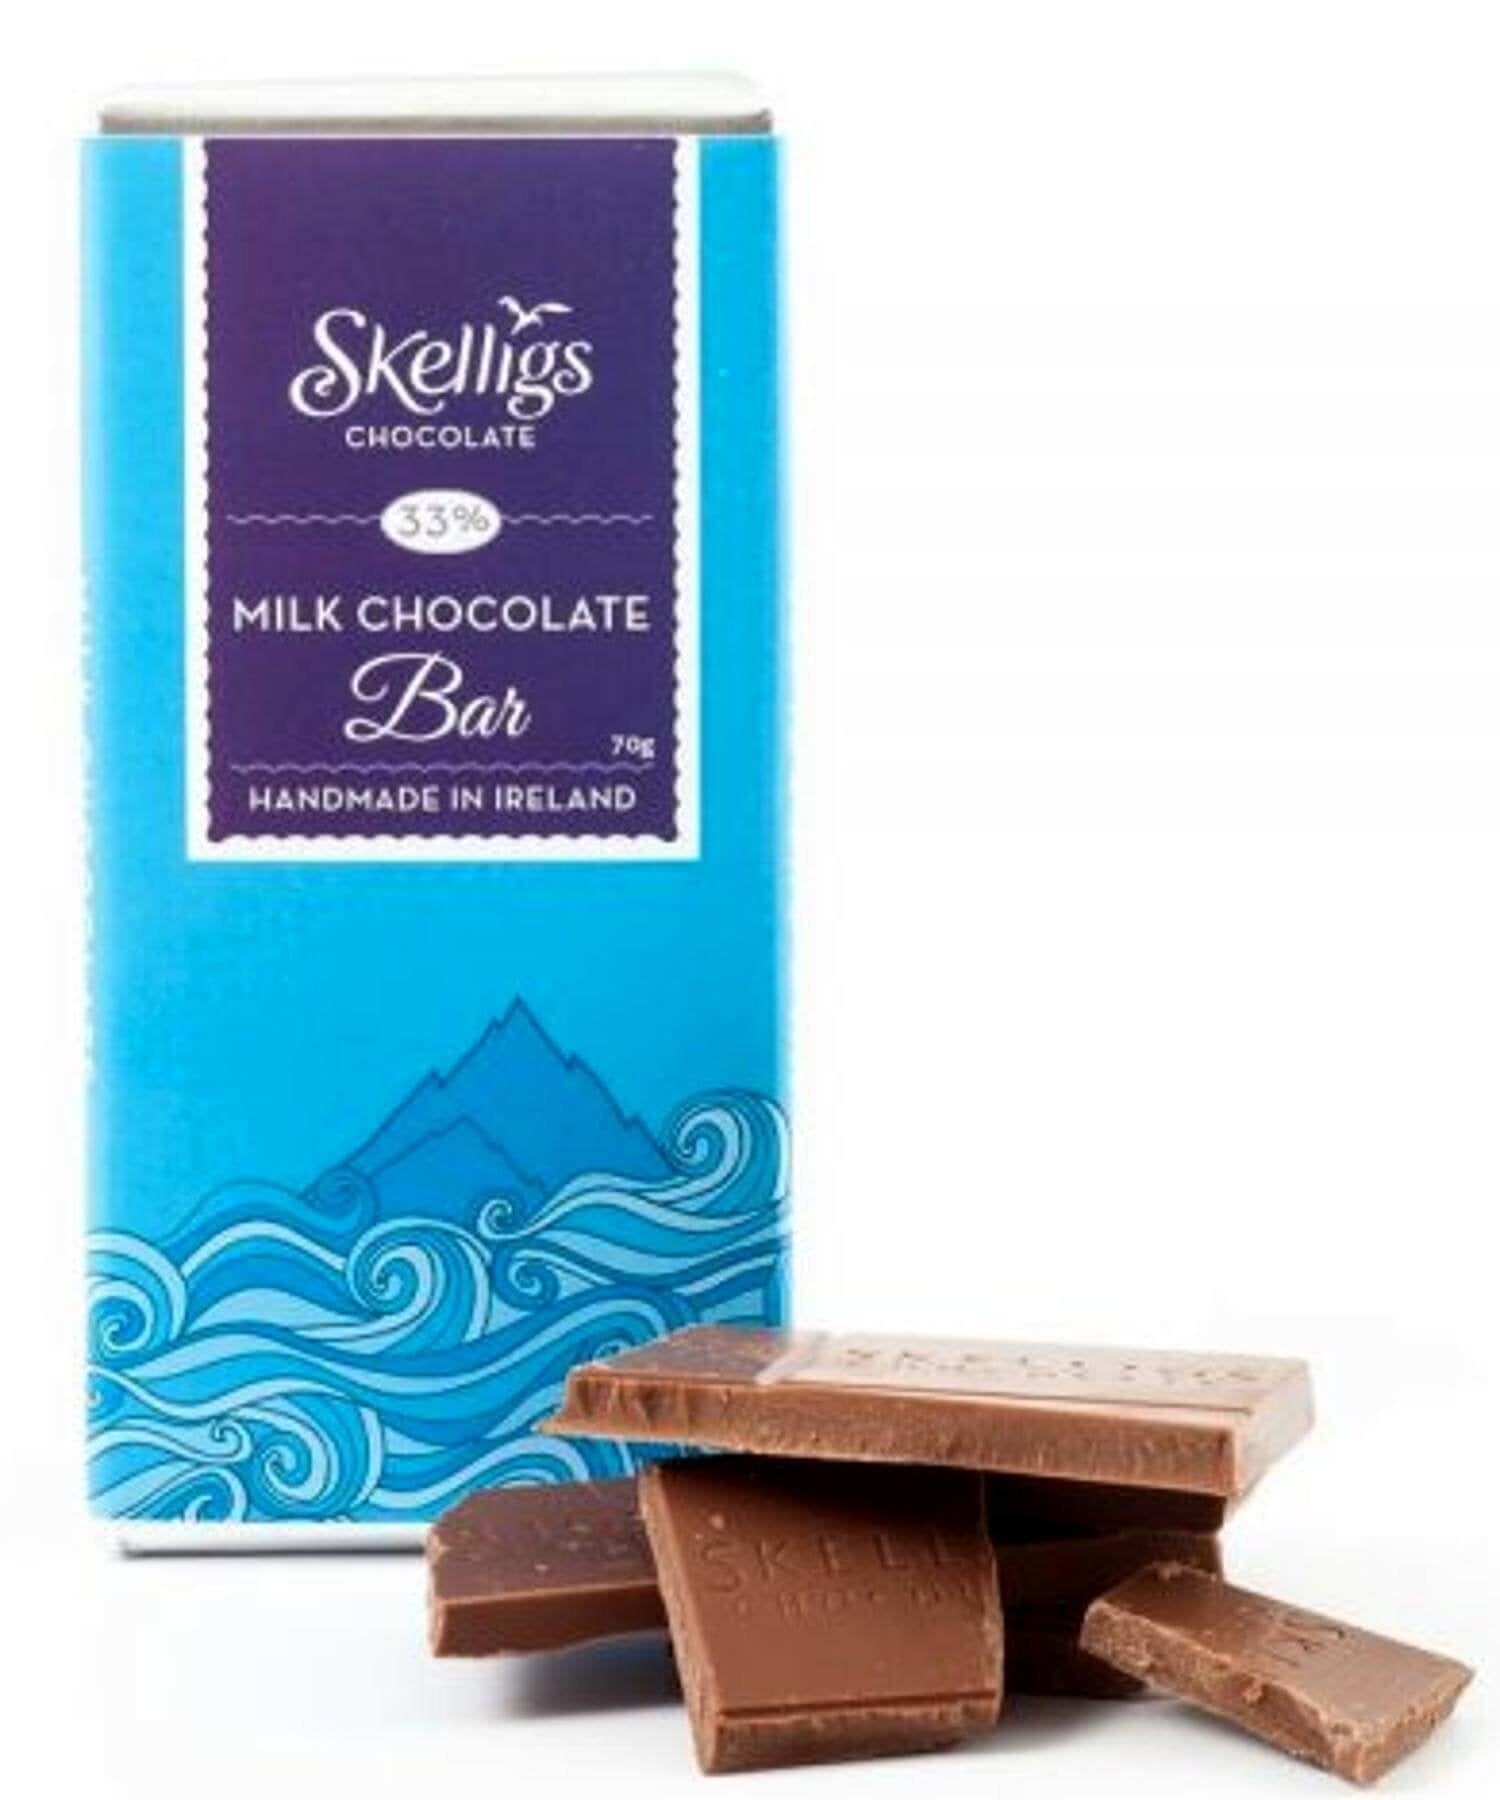 Chocolate Bar - Milk Chocolate - [Skelligs Chocolate] - Food Gifts - Irish Gifts